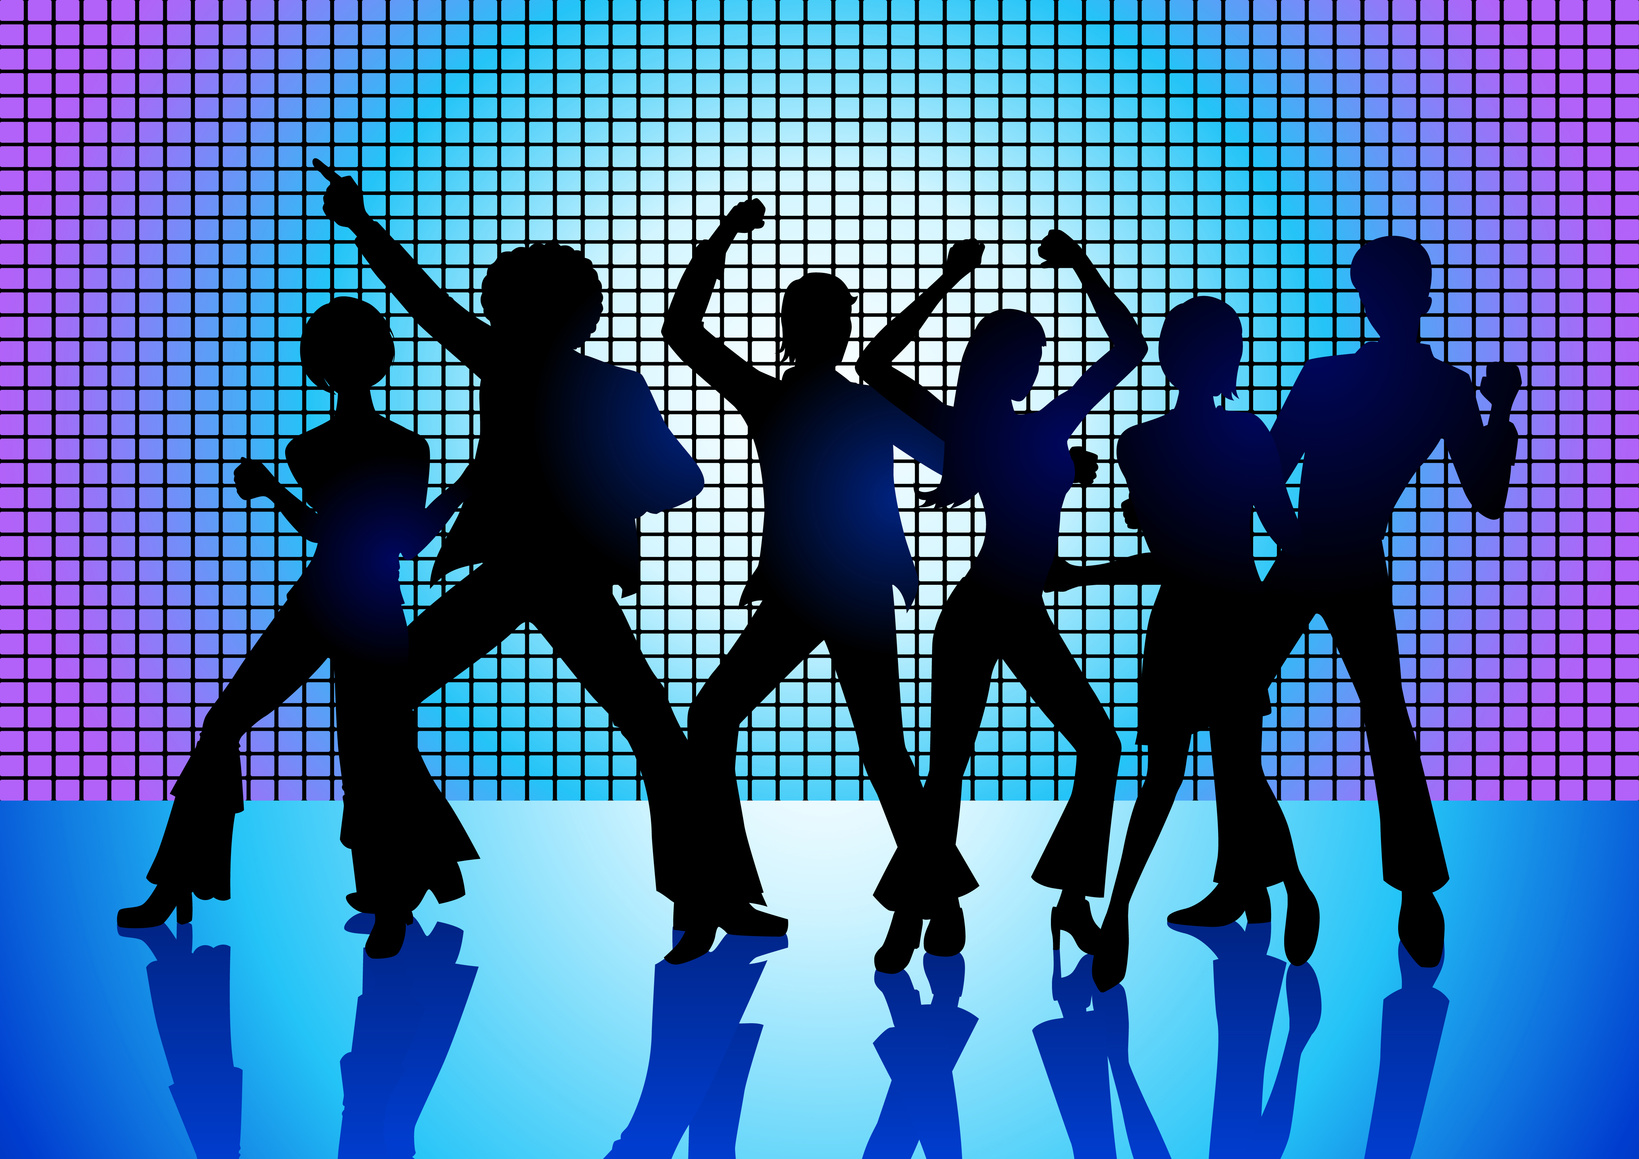 disco with design patterns a fresh look at dependency disco clip art transparent disco clip art free download